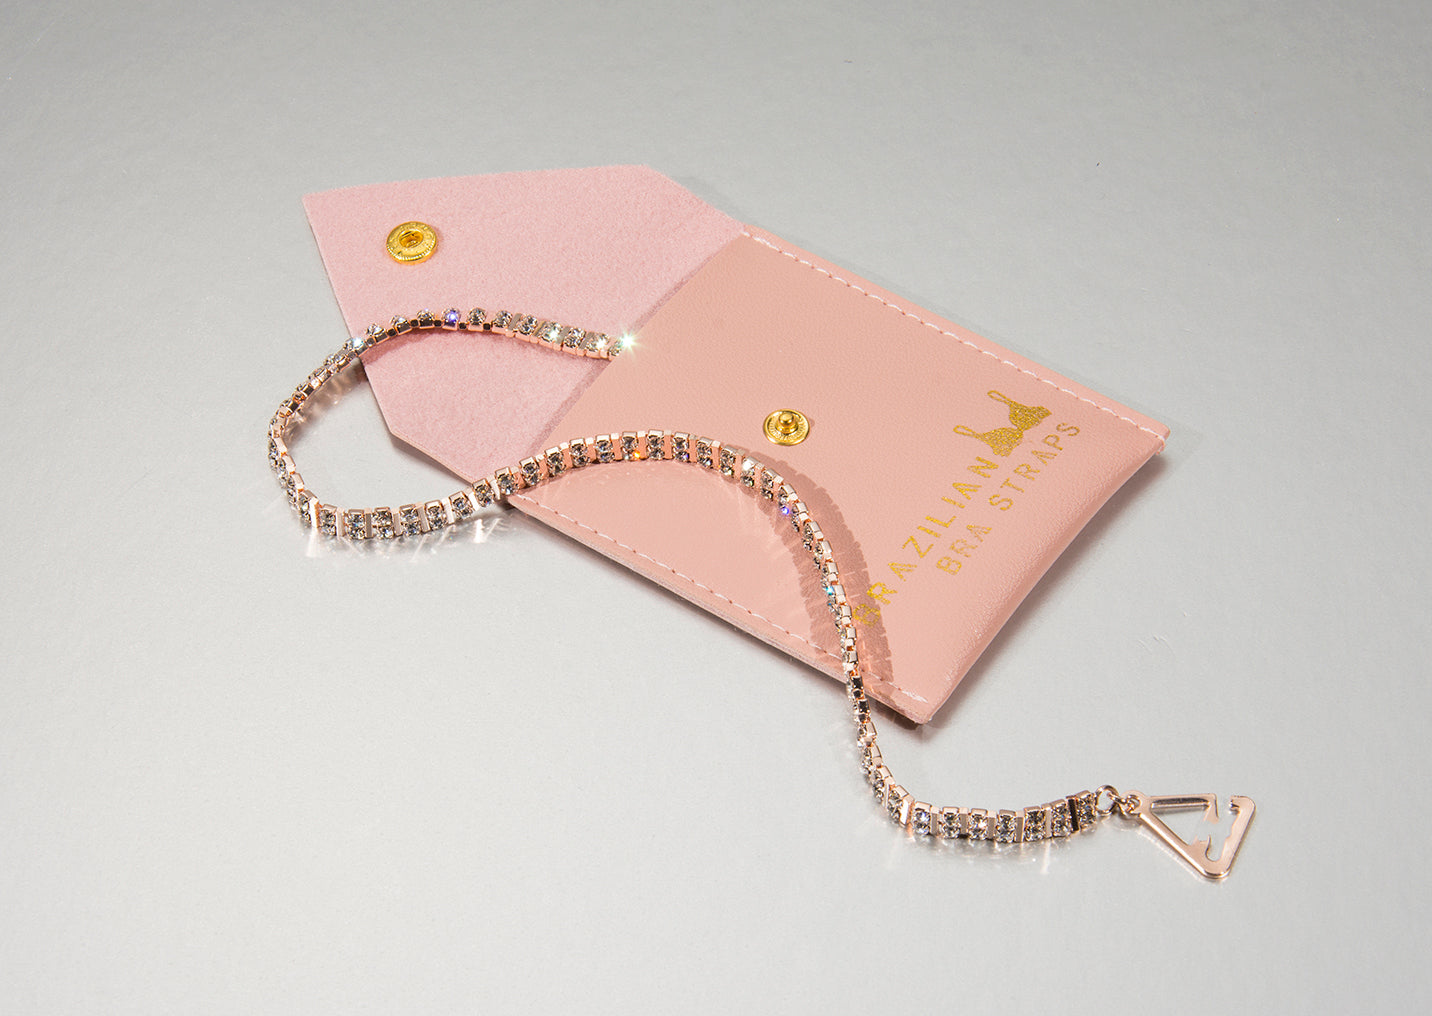 rose gold bra straps on a faux leather pouch